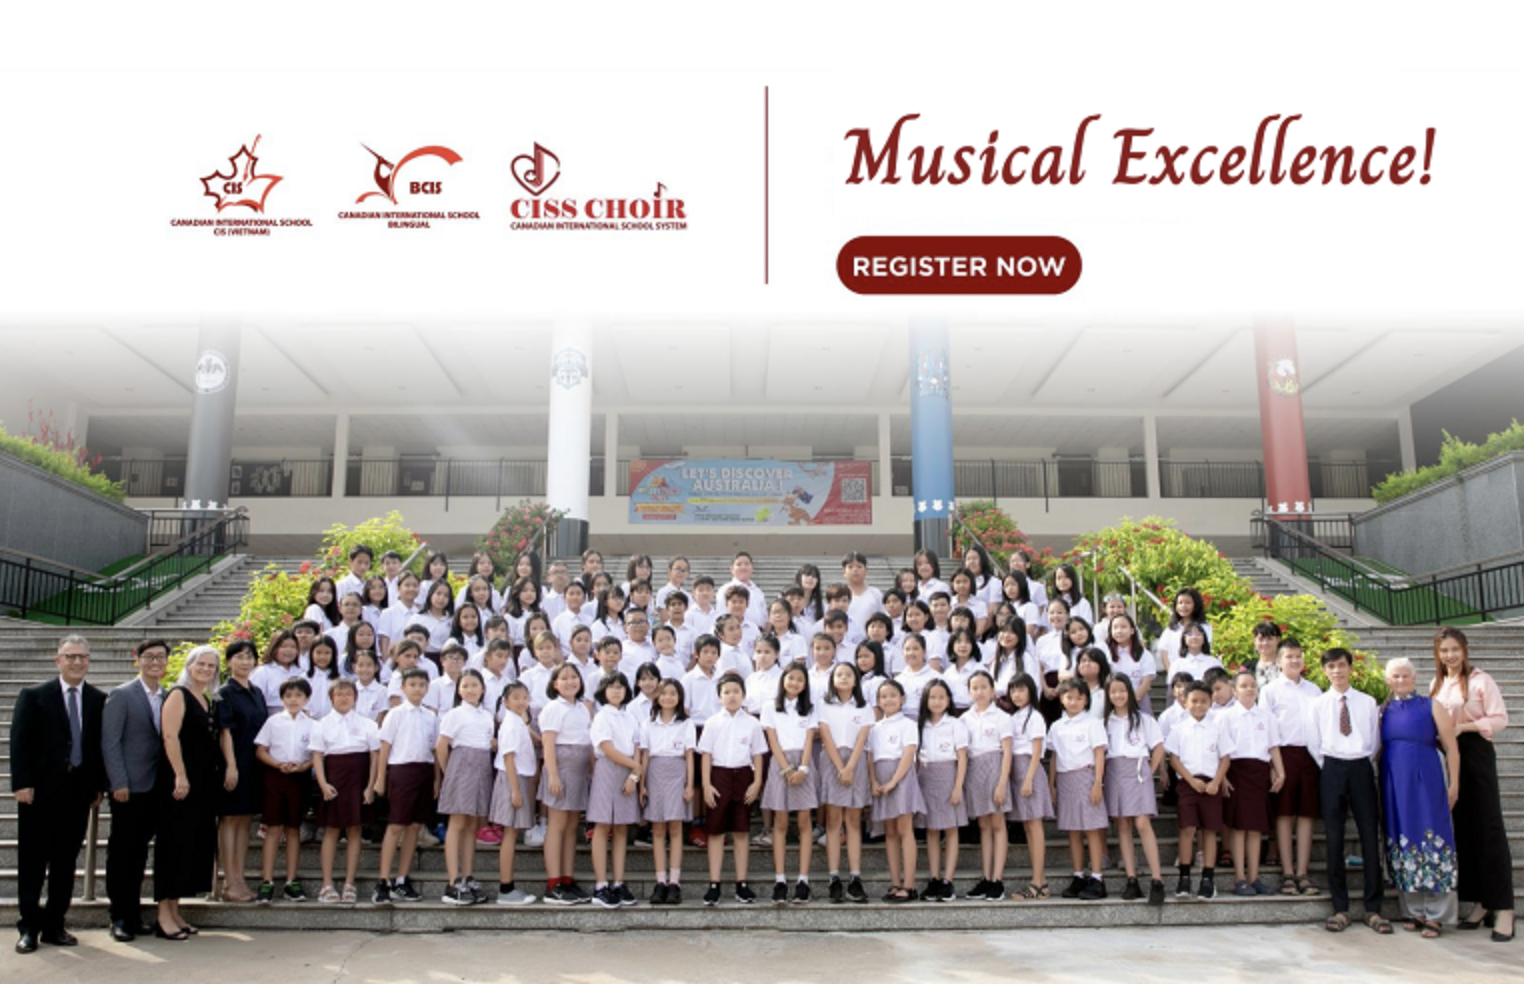 Auditions for the CISS Choir will take place soon - APPLY NOW for the 2021-2022 school year